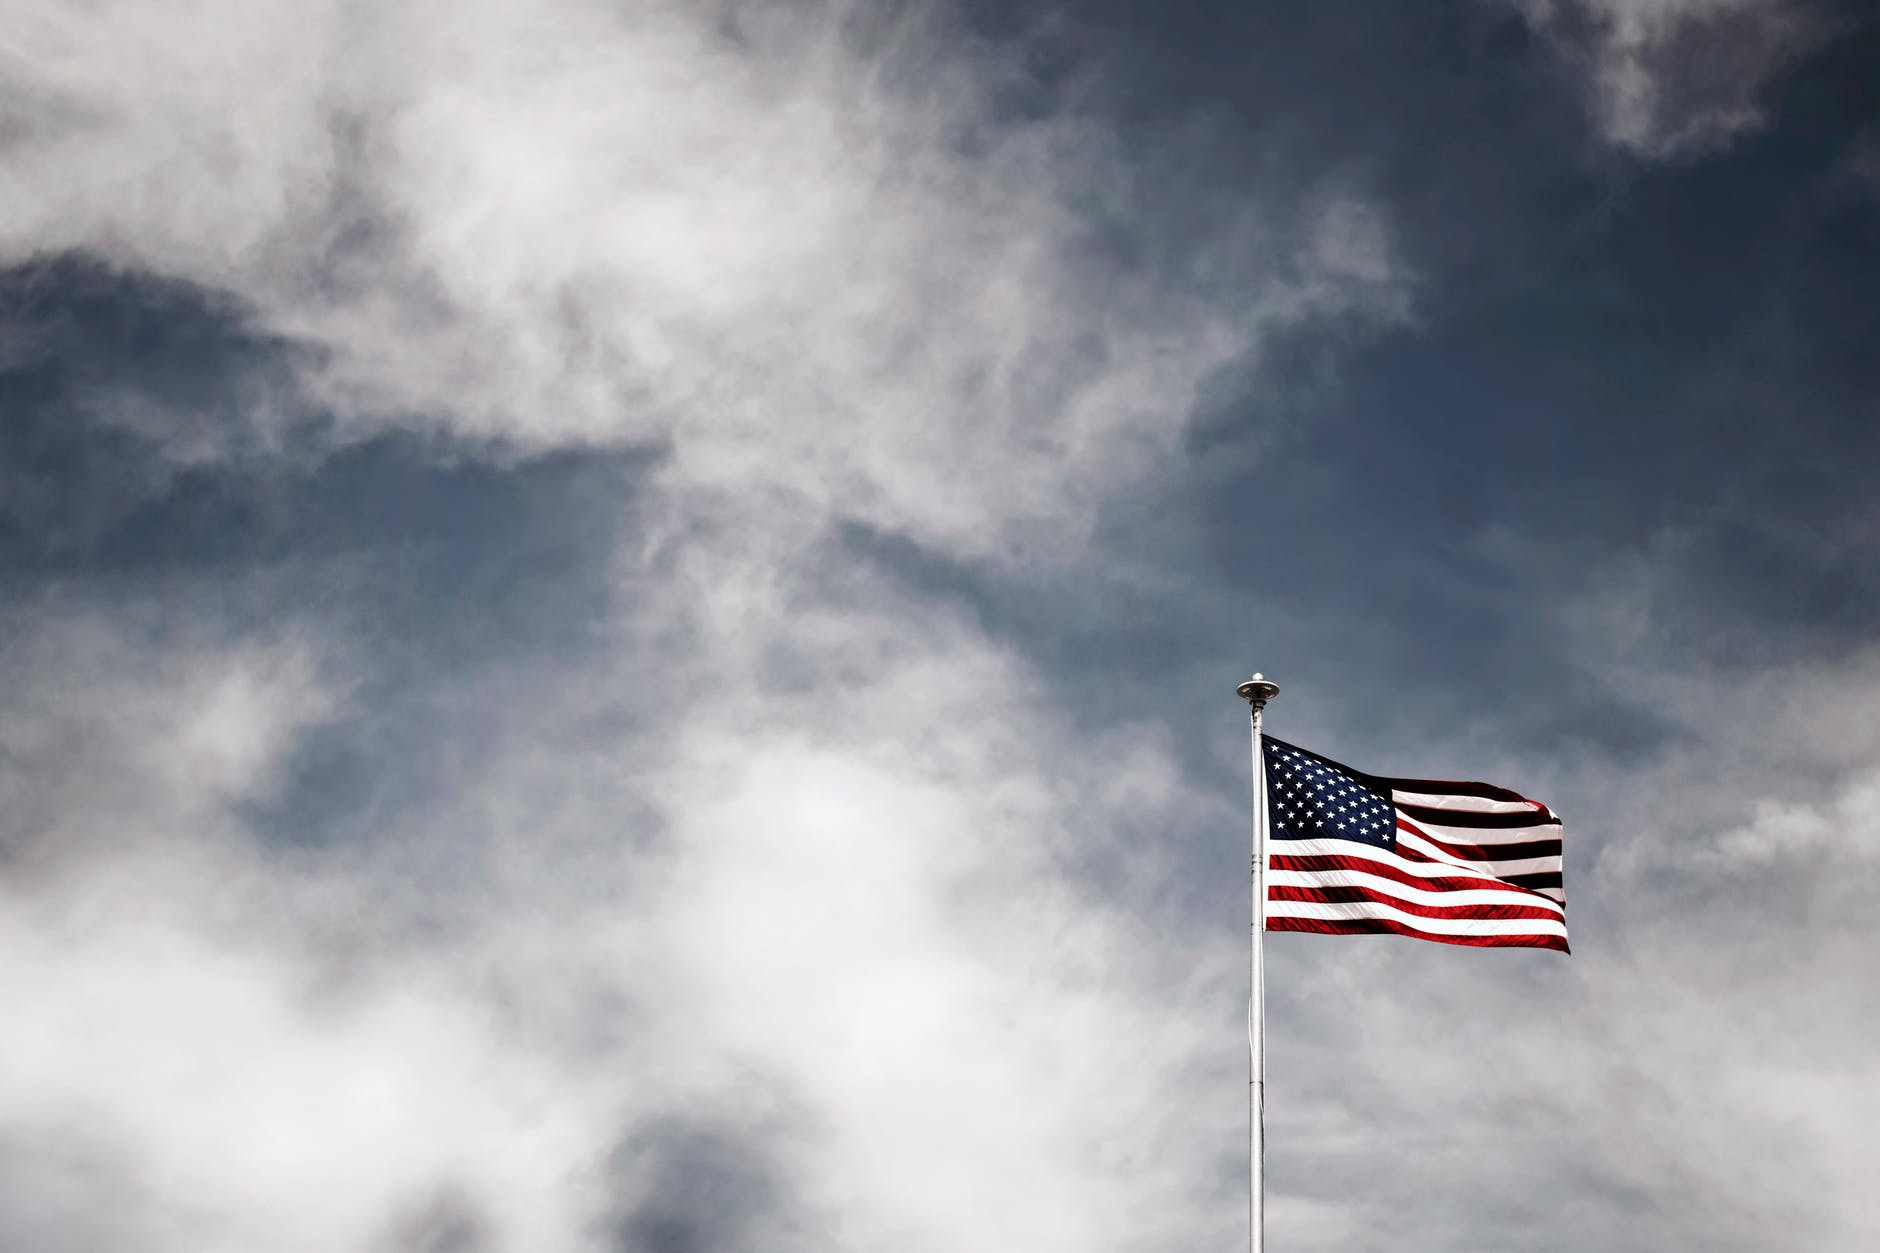 American flag with stars and stripes is recognized globally.